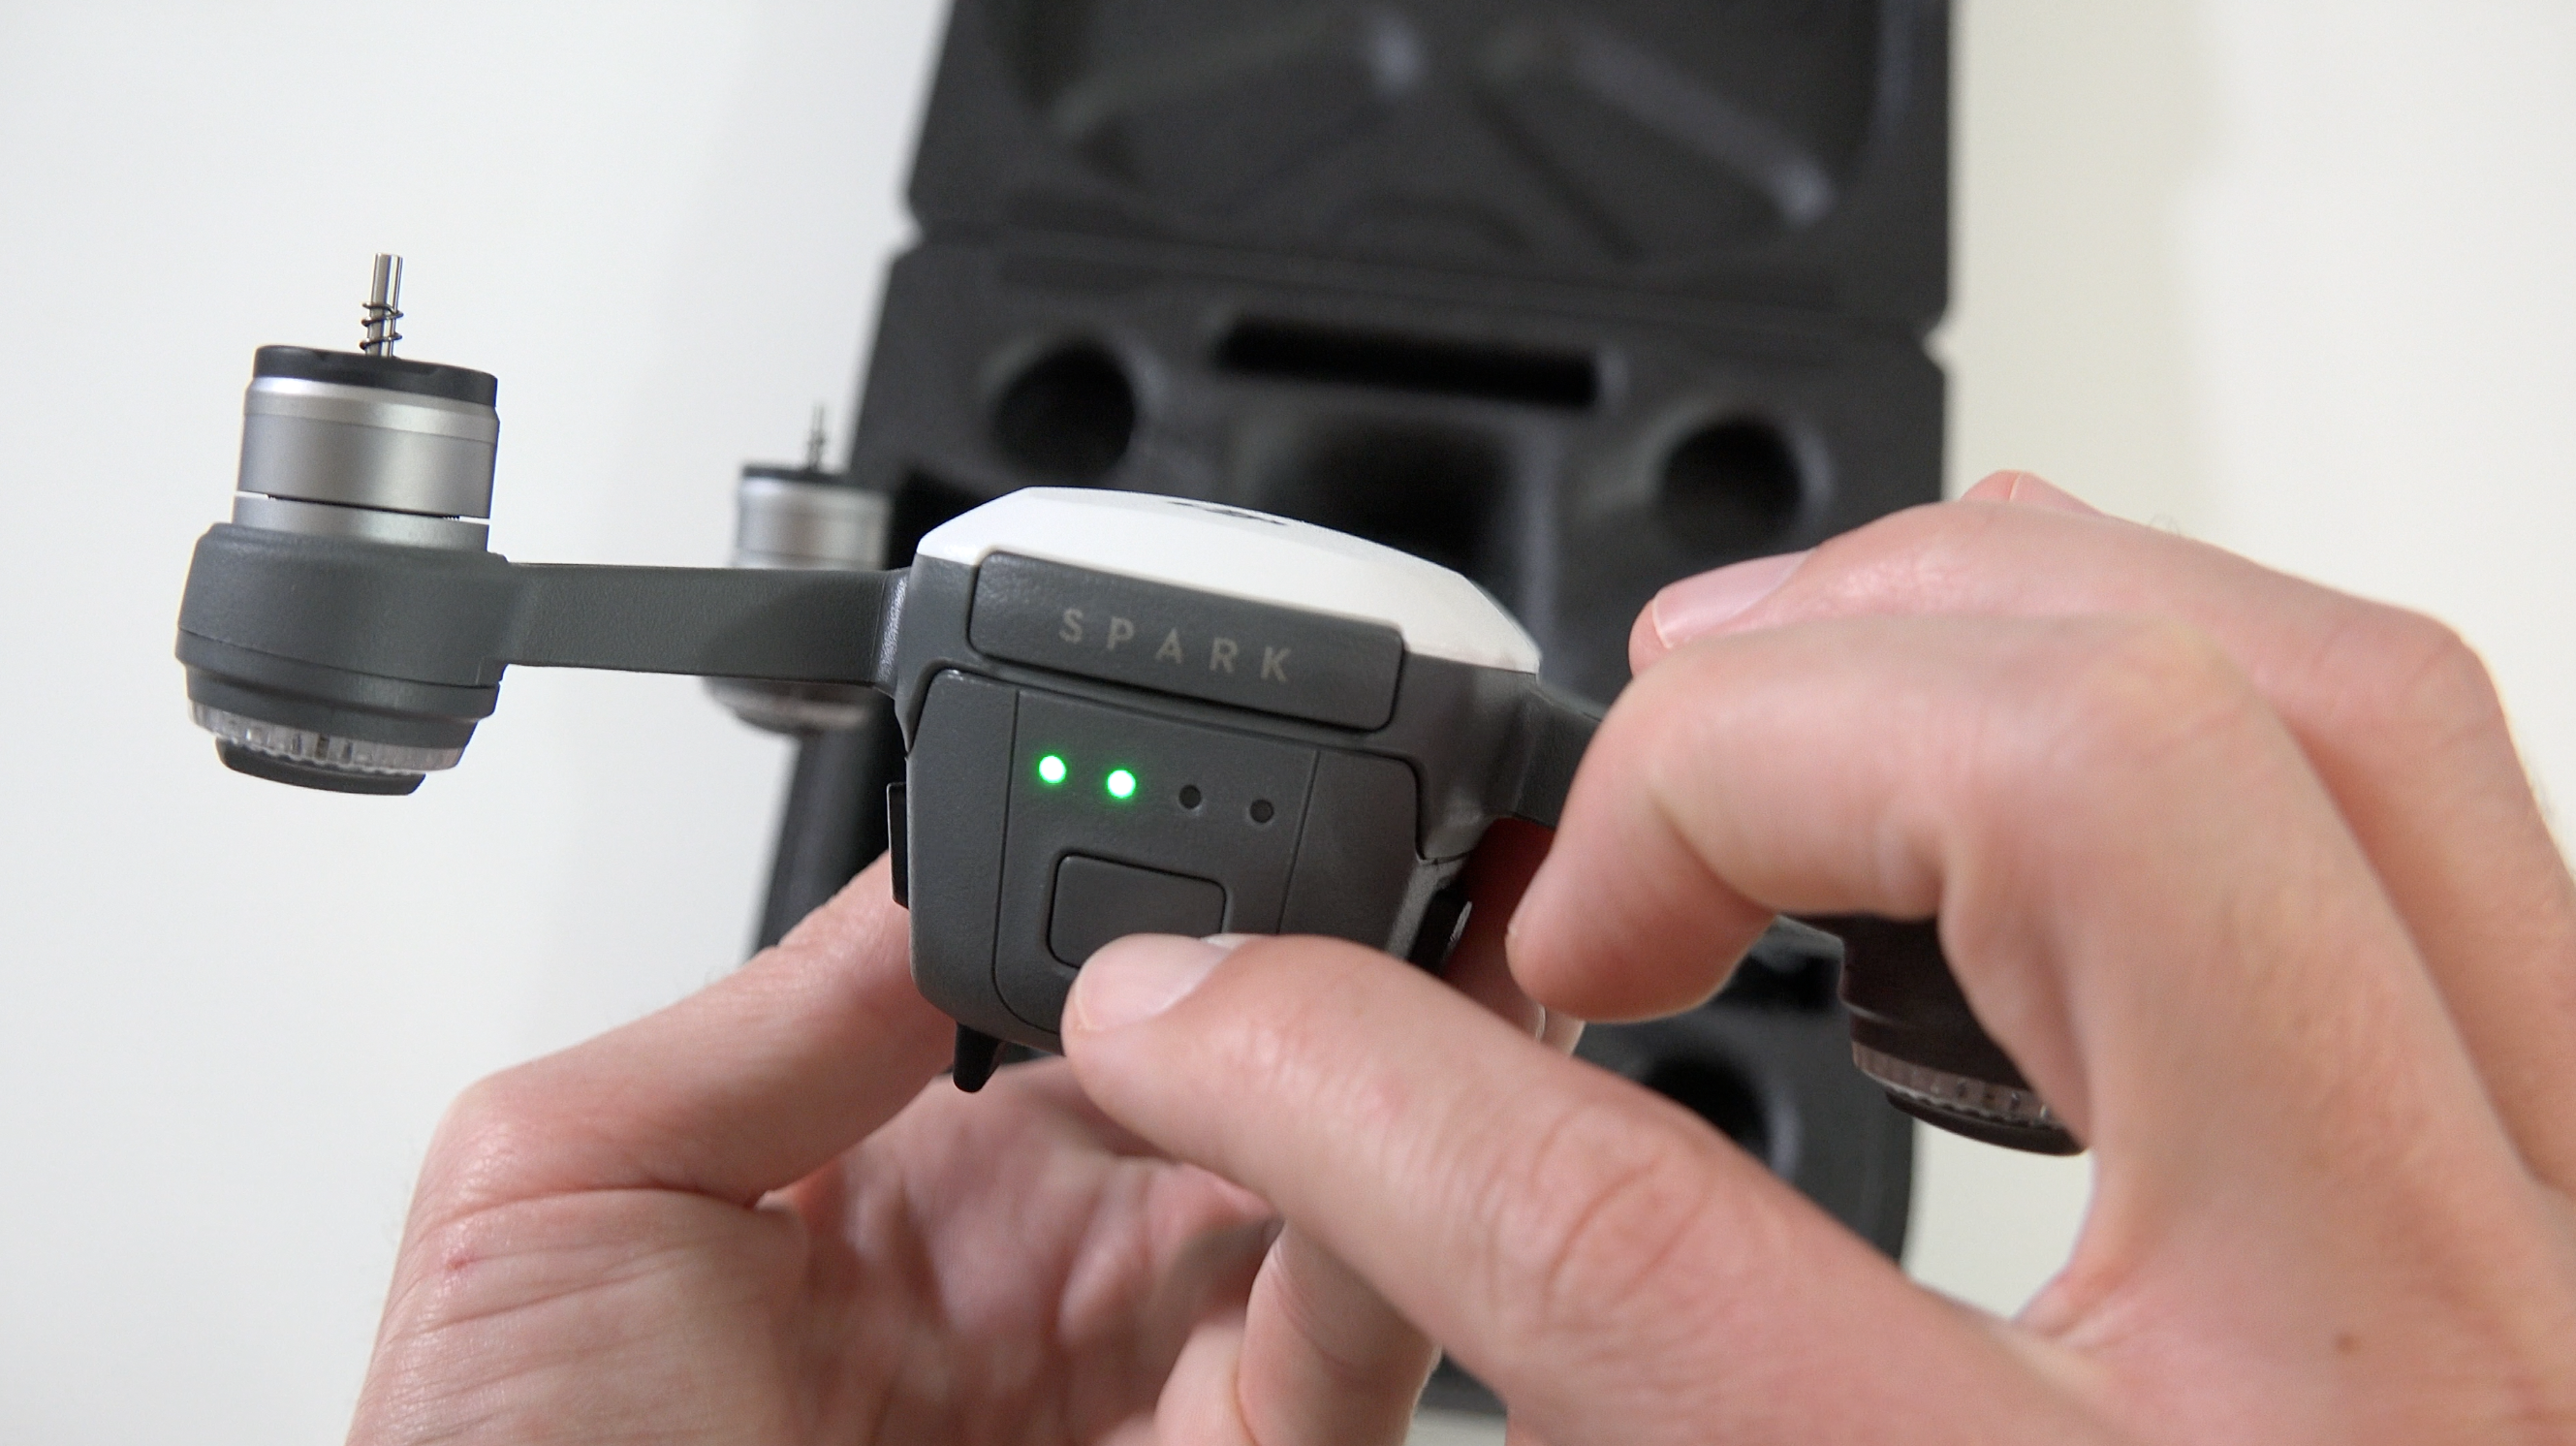 Dji Spark Unboxing Powerfully Compact And Gesture Smart